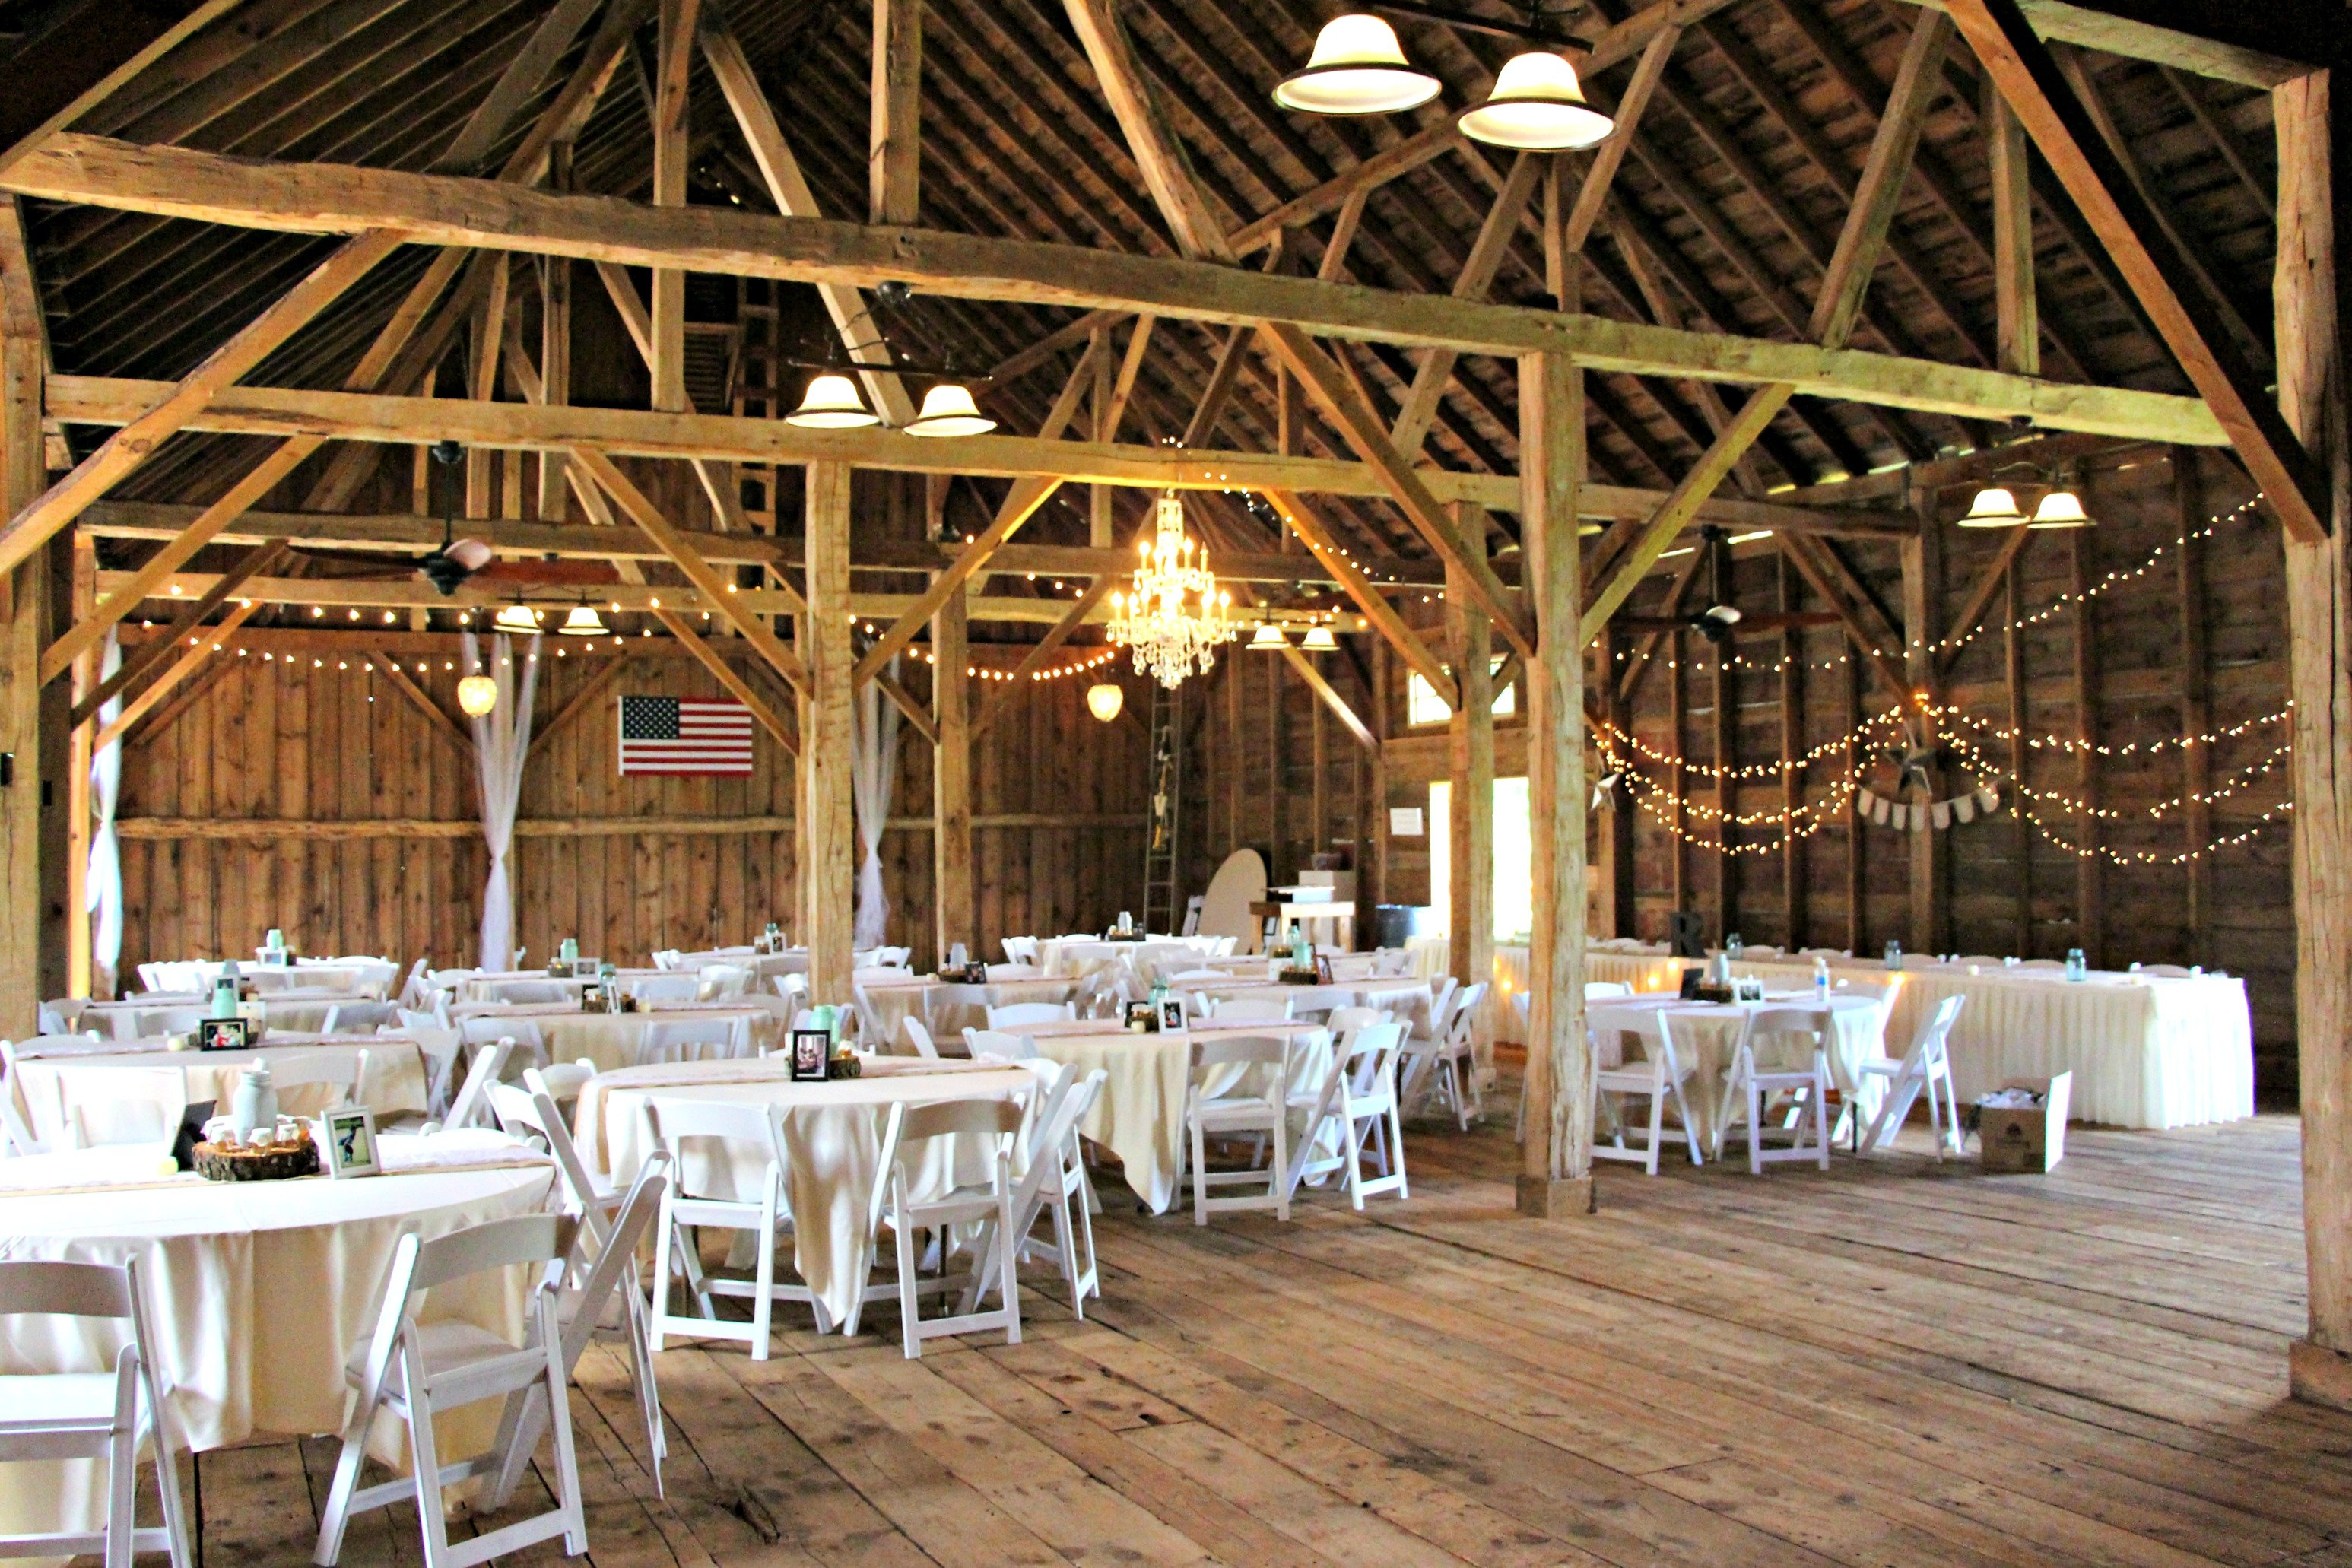 Inside of the barn